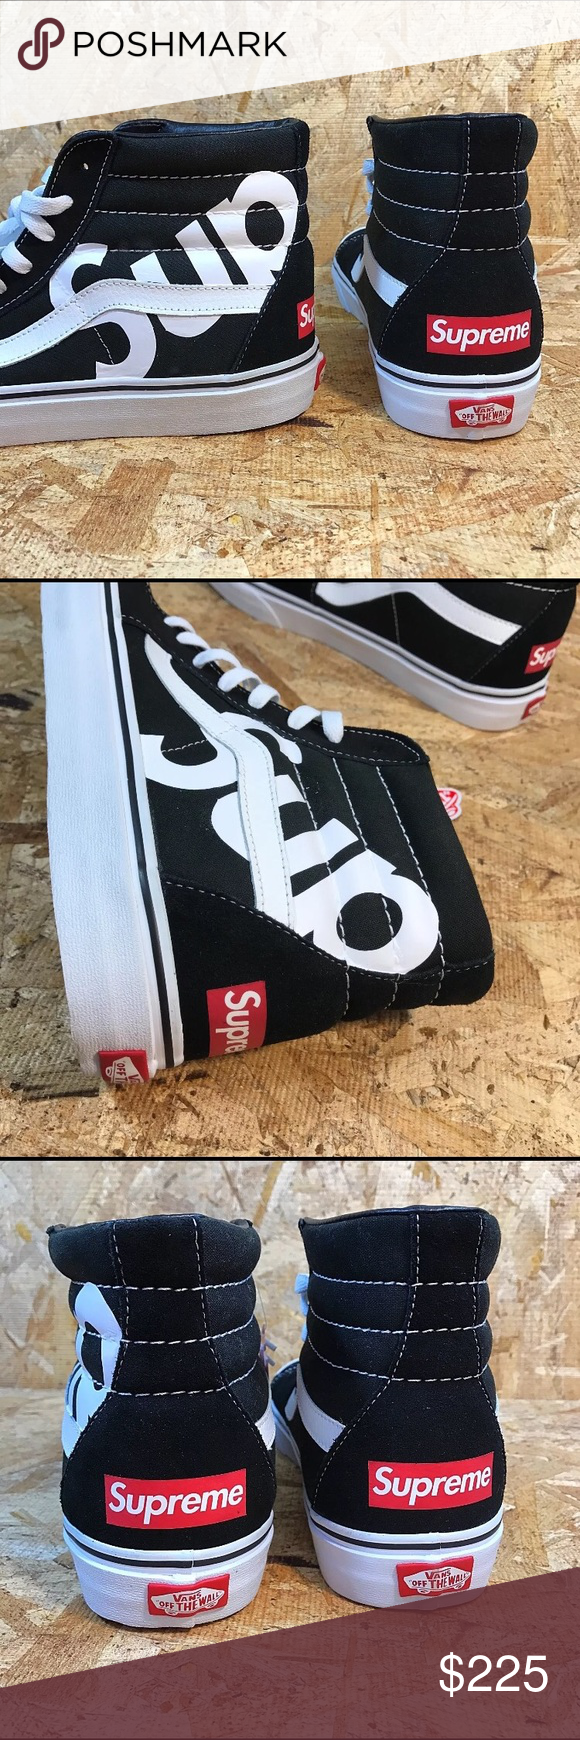 f519abd5f3f594 UNISEX CUSTOM Vans Supreme Sk8-Hi They are made-to-order